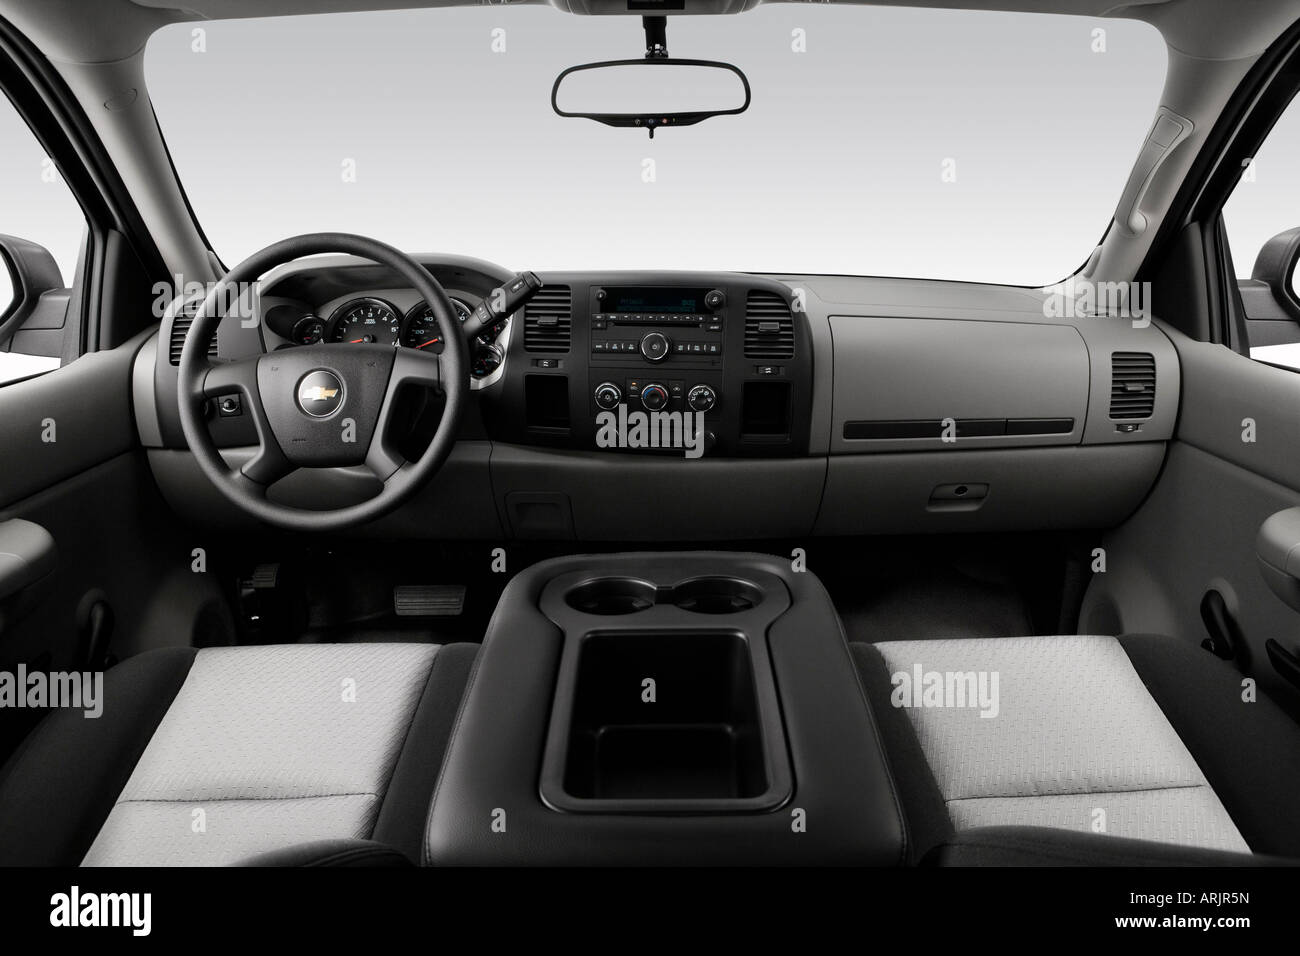 Silverado 2005 chevy silverado center console : Silverado 2500 Stock Photos & Silverado 2500 Stock Images - Alamy